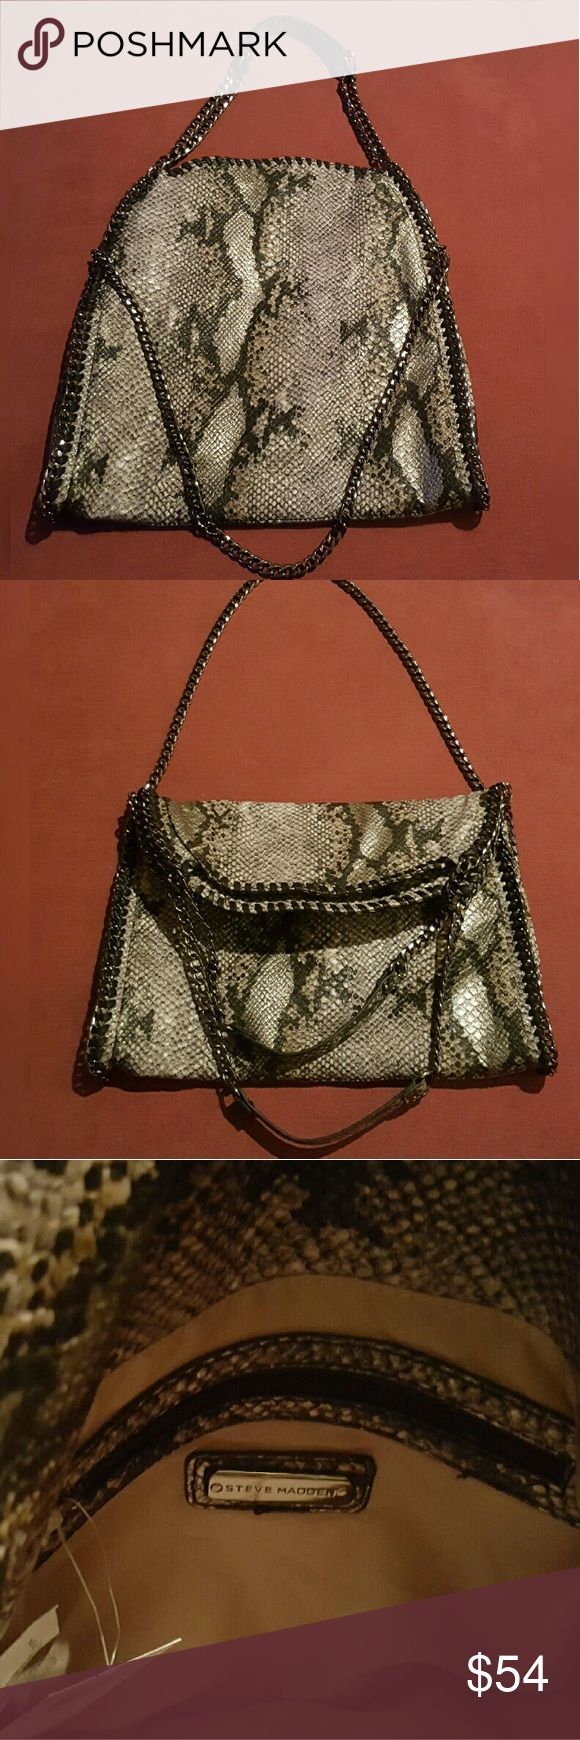 NWT Steve Madden Fold-Over Tote Looks like the highly sought after Stella McCartney Falabella, but it isn't. It also happens to be vegan. Three chains. Faux reptile. Lots of room inside. One large interior pocket with zip and two open pockets to stow away your devices. Get the high end look without the high end price. Very chic! Please be considerate and take into account the asking prices of your own sale items prior to negotiating a deal. Only reasonable offers considered.  No trades…